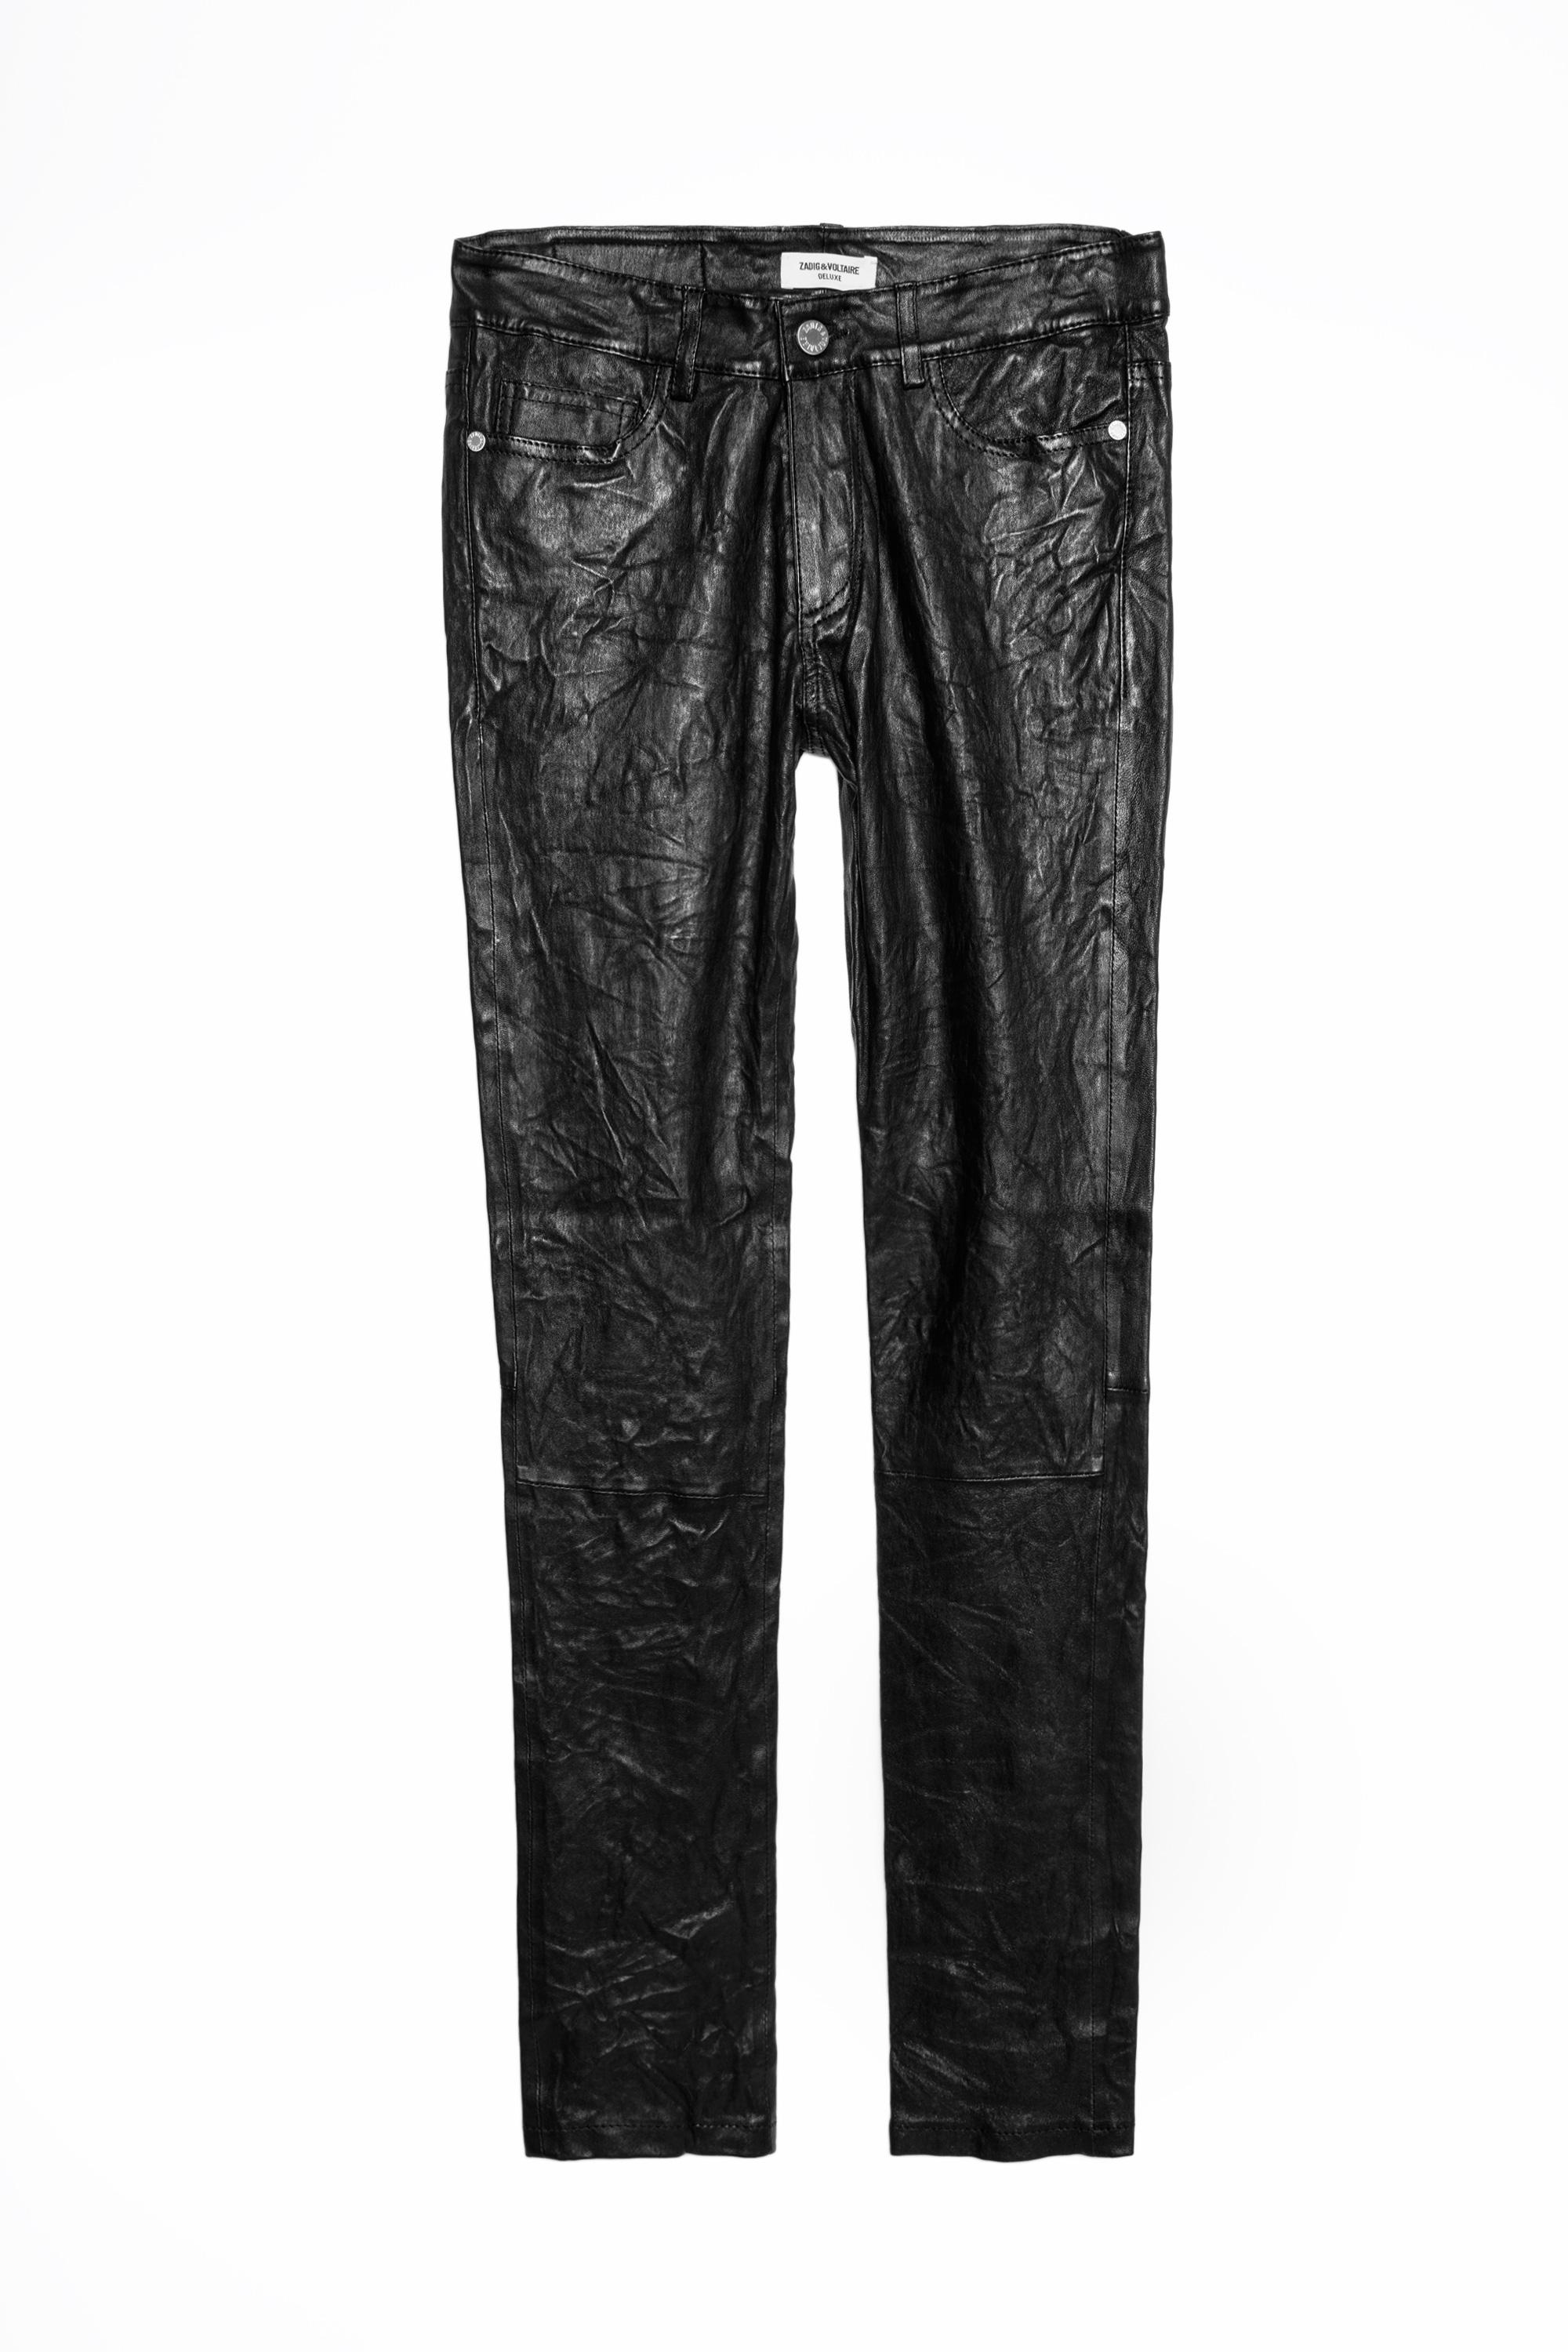 Zadig & Voltaire Leather Phlame Deluxe Pants in Black